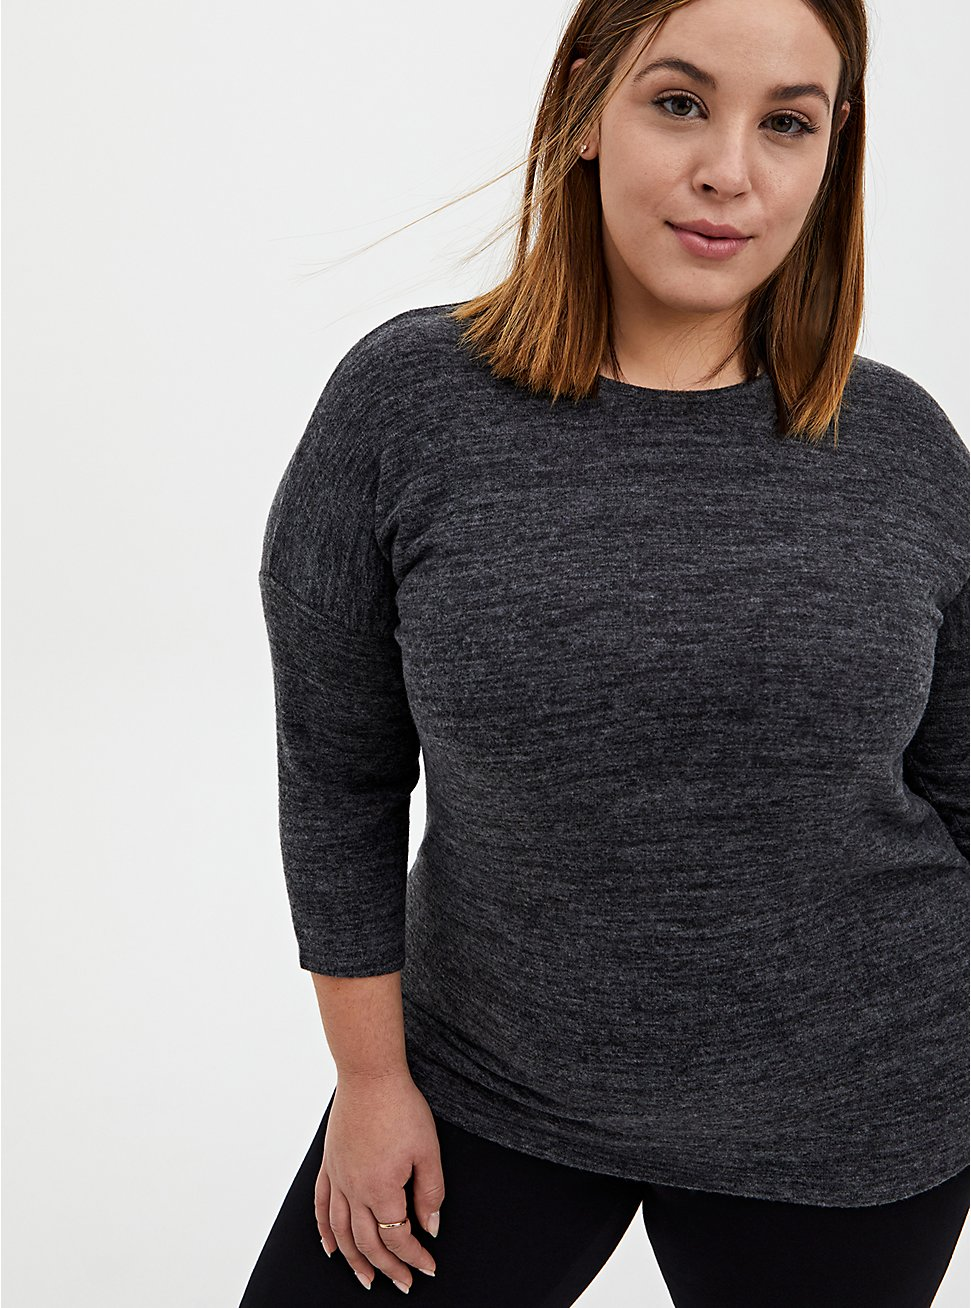 Super Soft Plush Black Long Sleeve Crew Tee, DEEP BLACK, hi-res